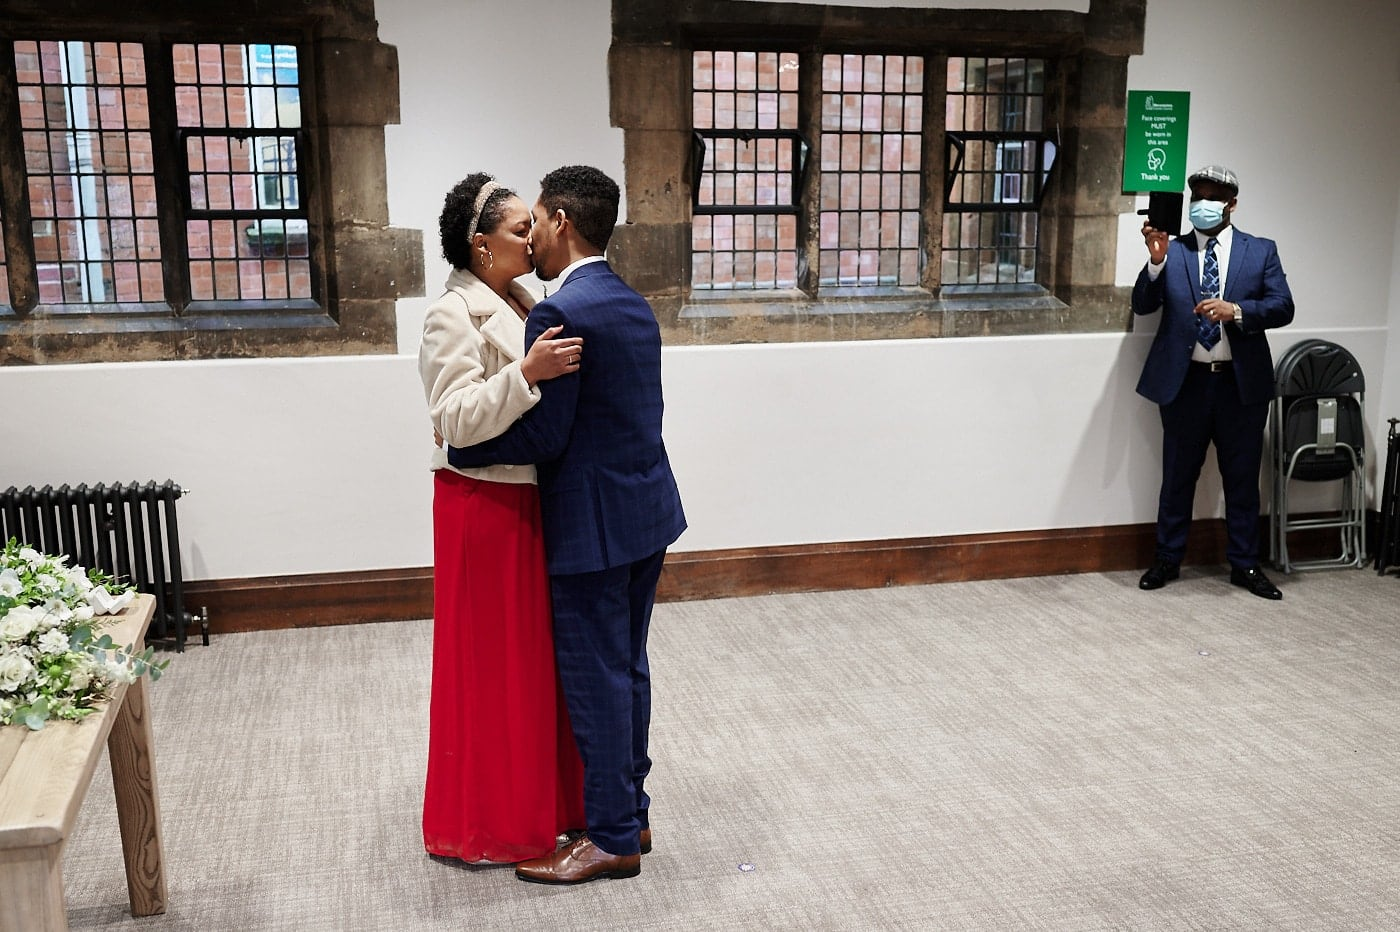 First kiss during wedding ceremony in The Henley Room as witness with mask takes photo